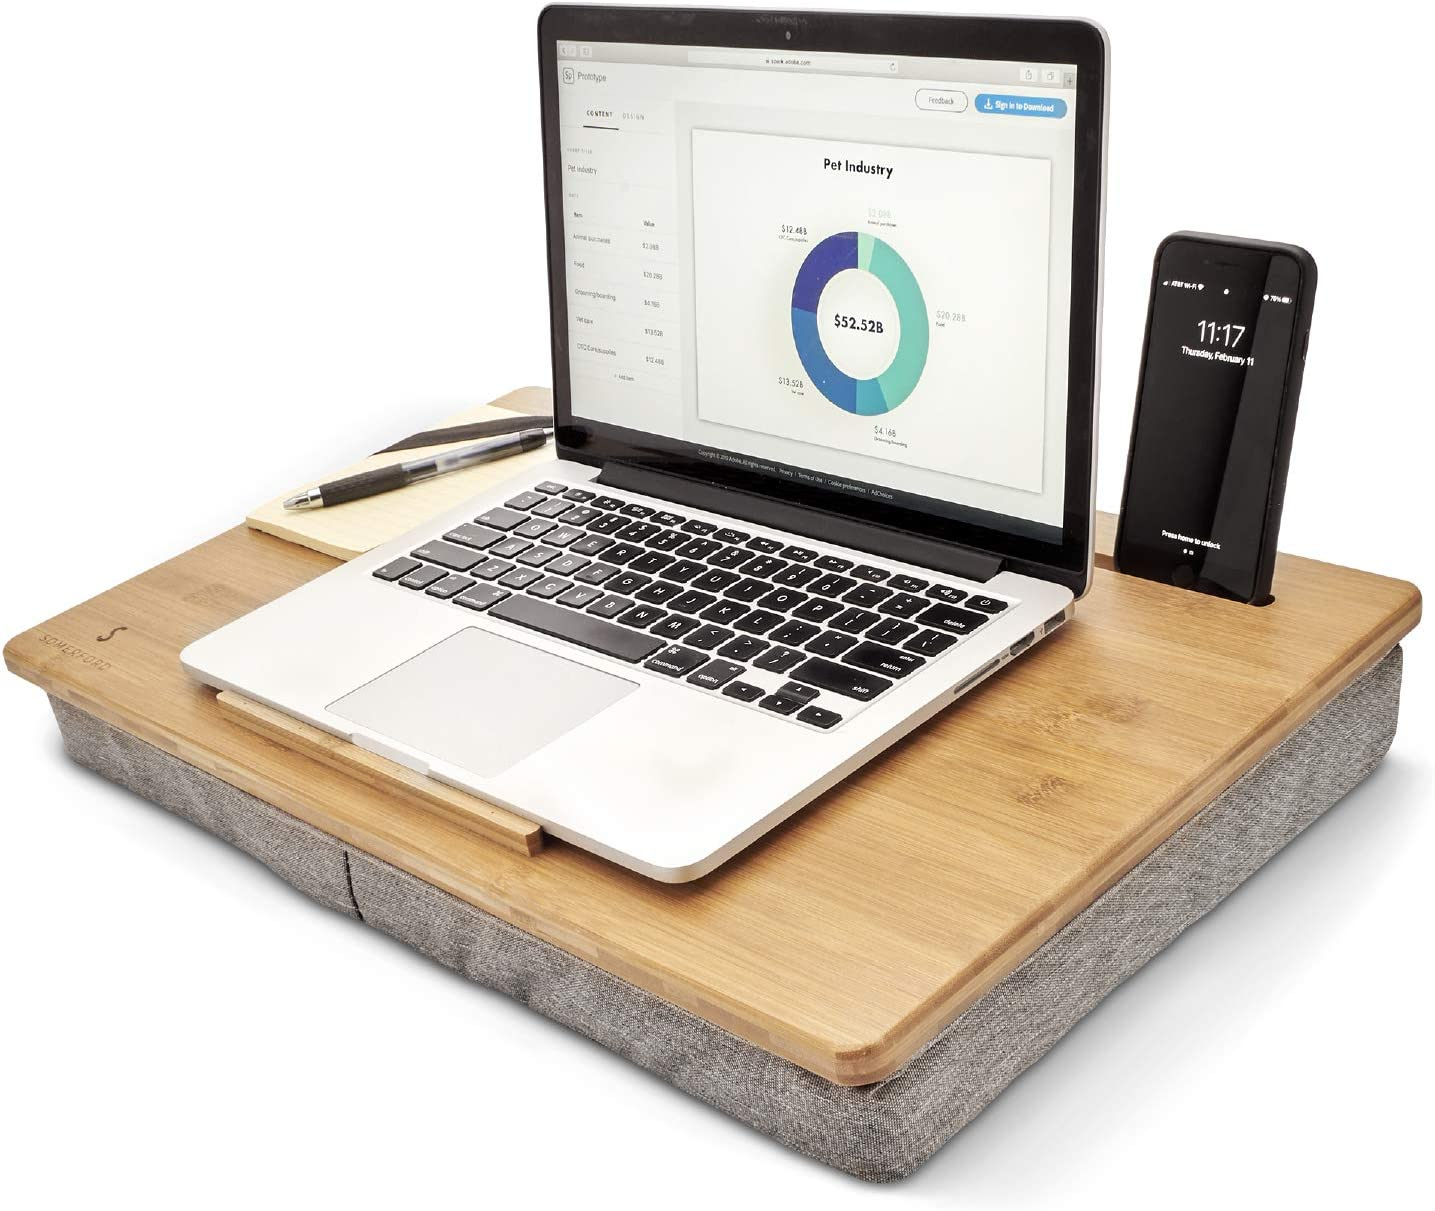 Lap Desk for Laptop with Cushion, Bamboo Workspace Organizer with Pillow Perfect for Bed, Couch and Working from Home.